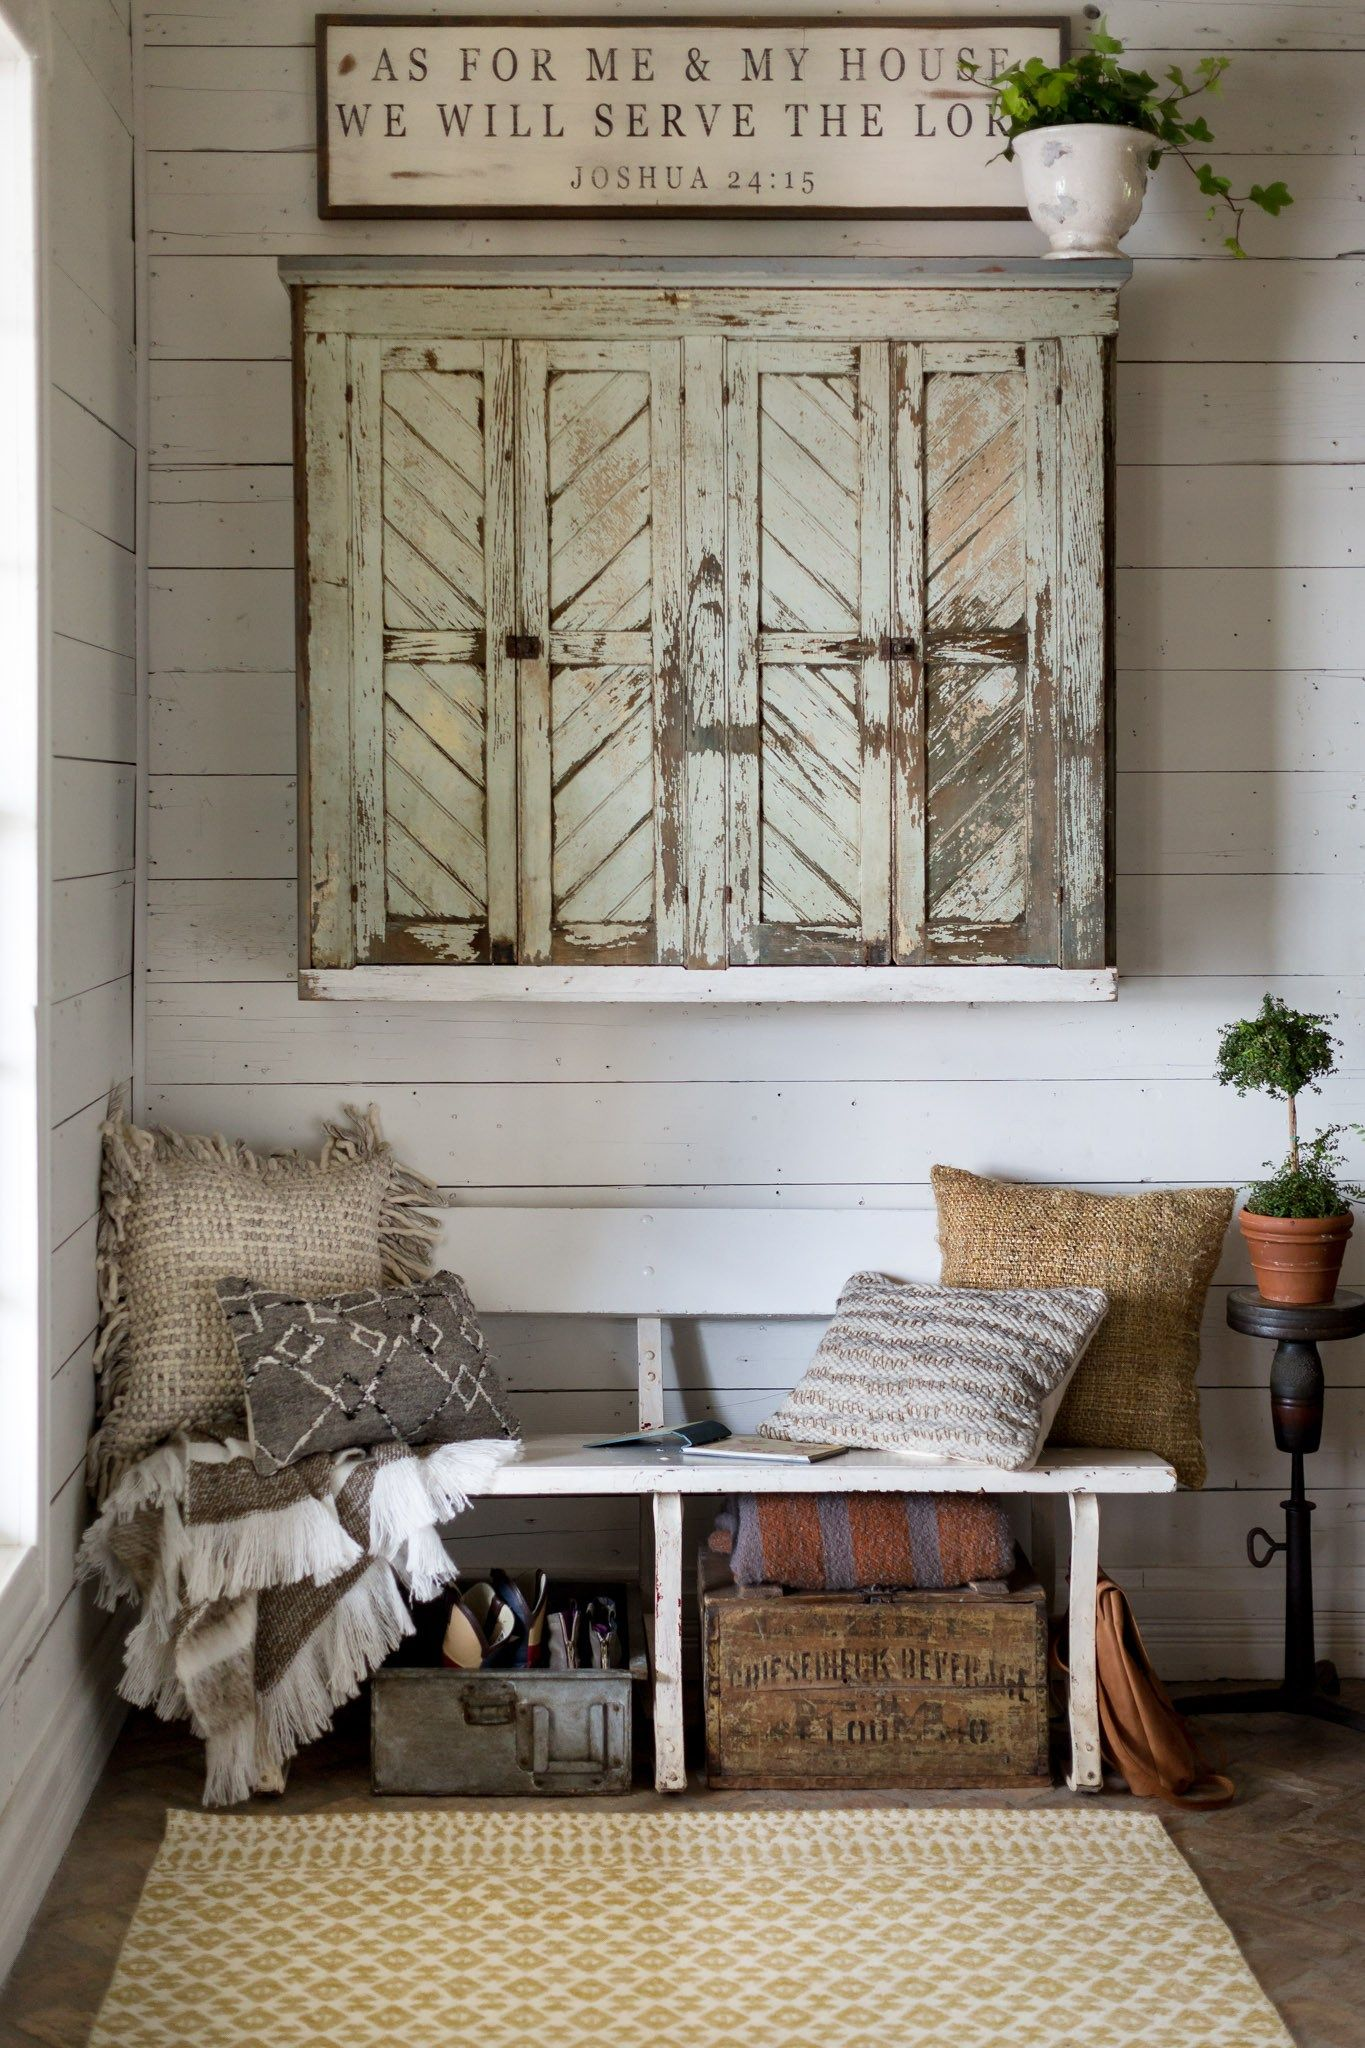 Buy Magnolia Home Rugs By Joanna Gaines At Furniture Row And Learn About  The Story Behind Her Collection. Bring Beautiful Magnolia Home Rugs To Your  Home!